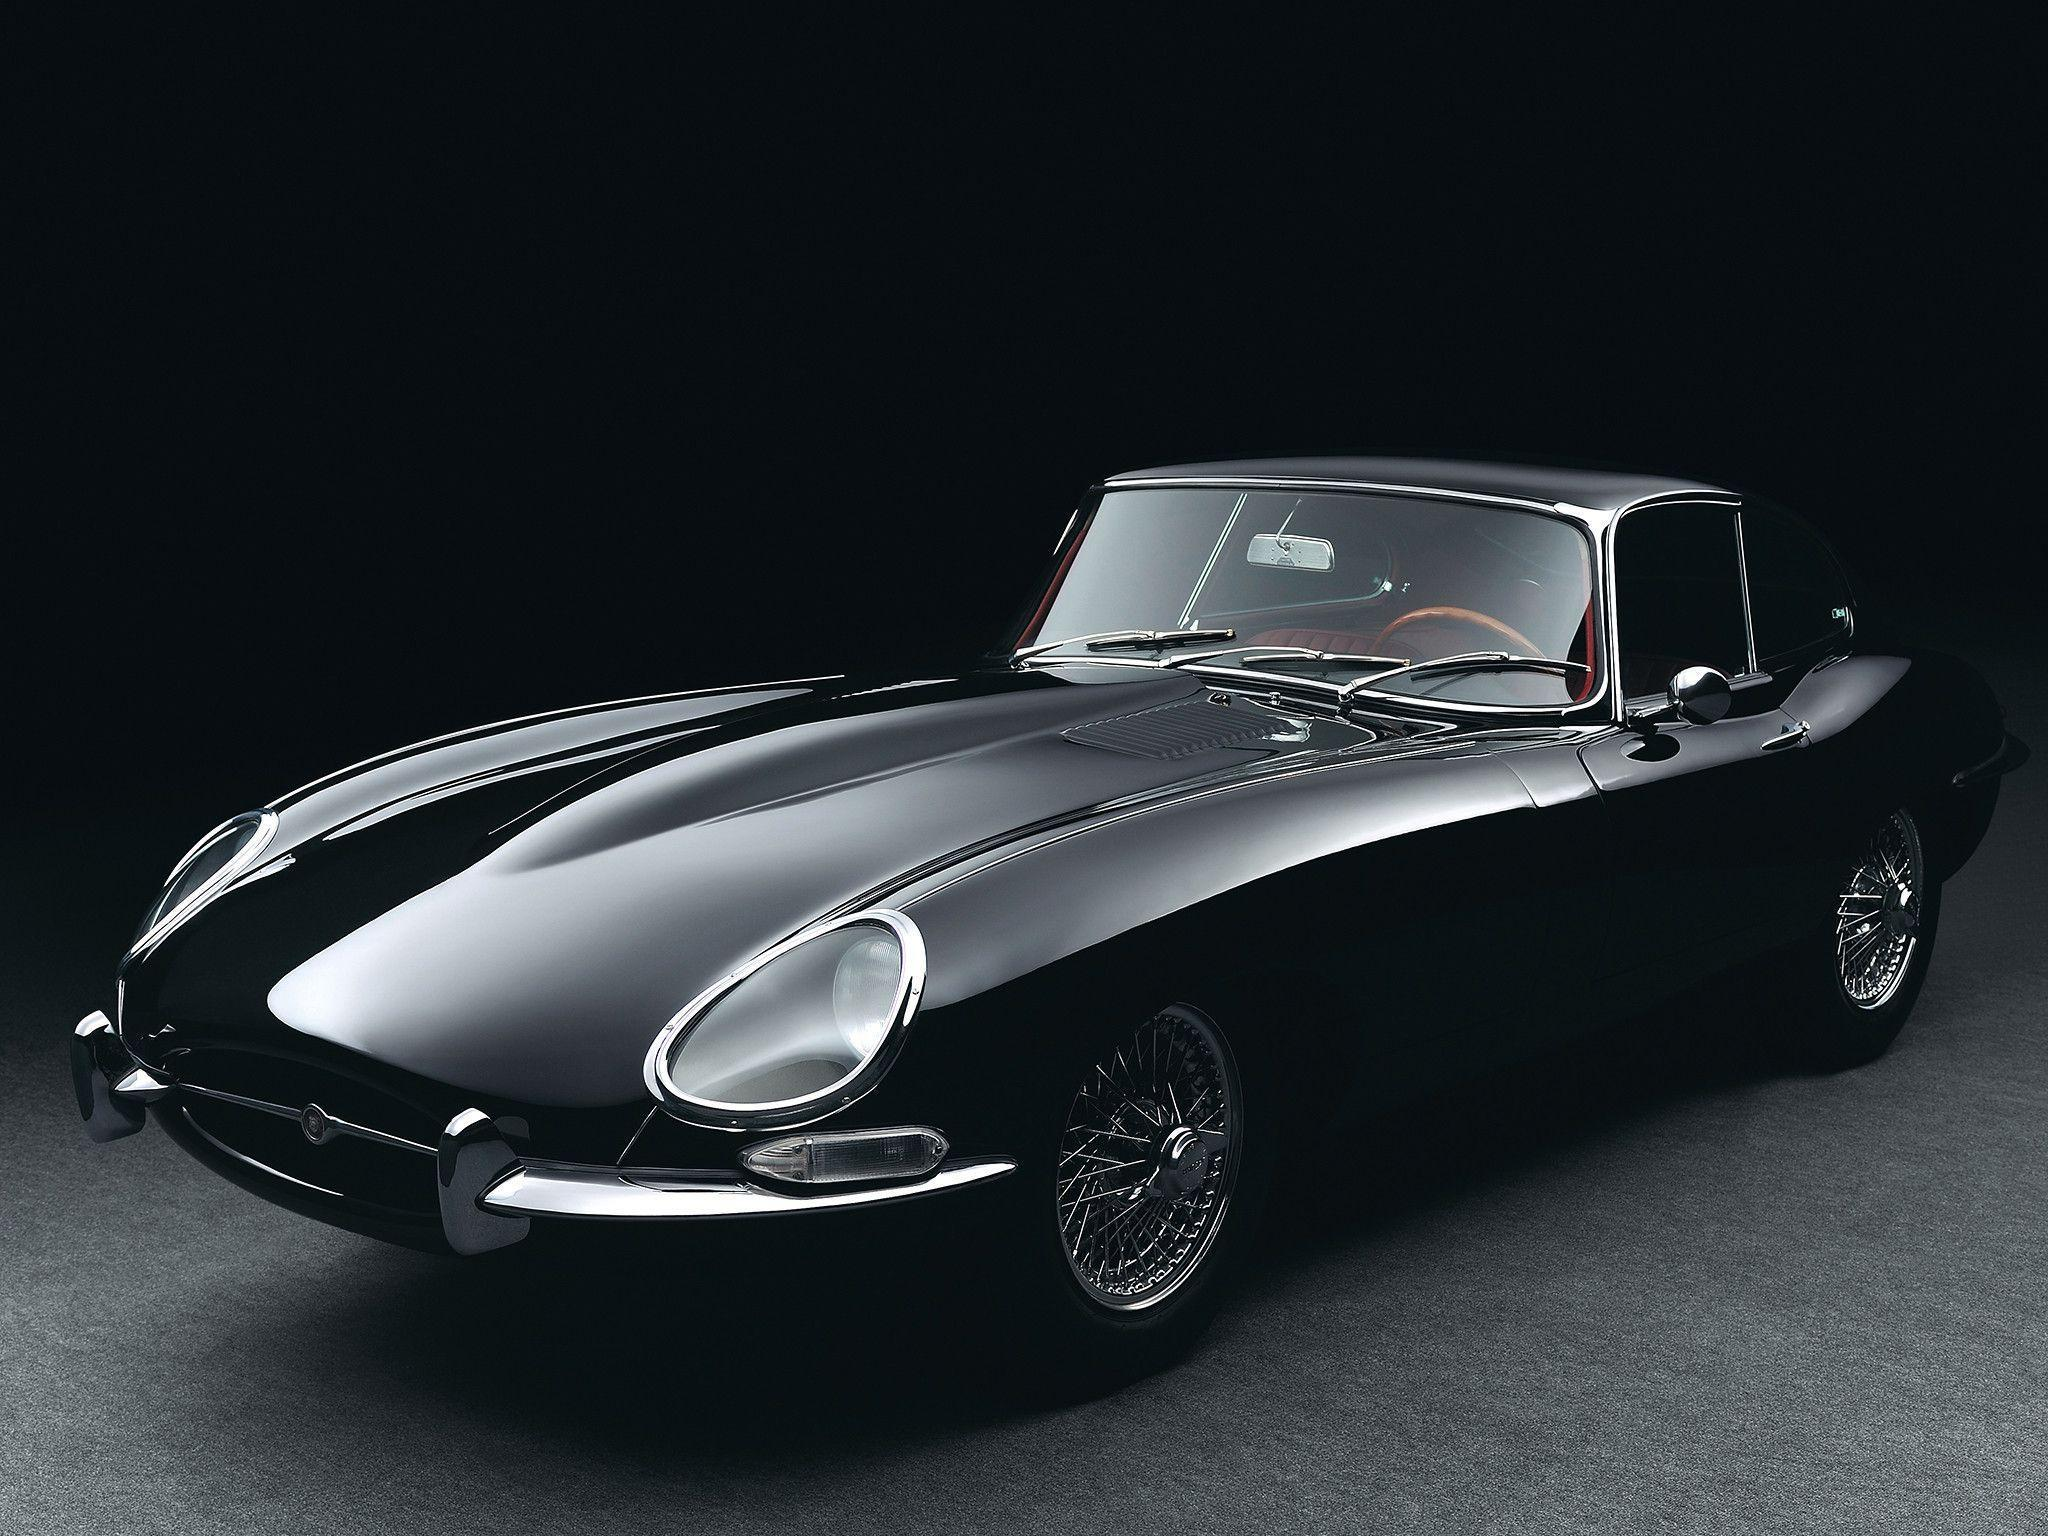 jaguar e type wallpapers wallpaper cave. Black Bedroom Furniture Sets. Home Design Ideas